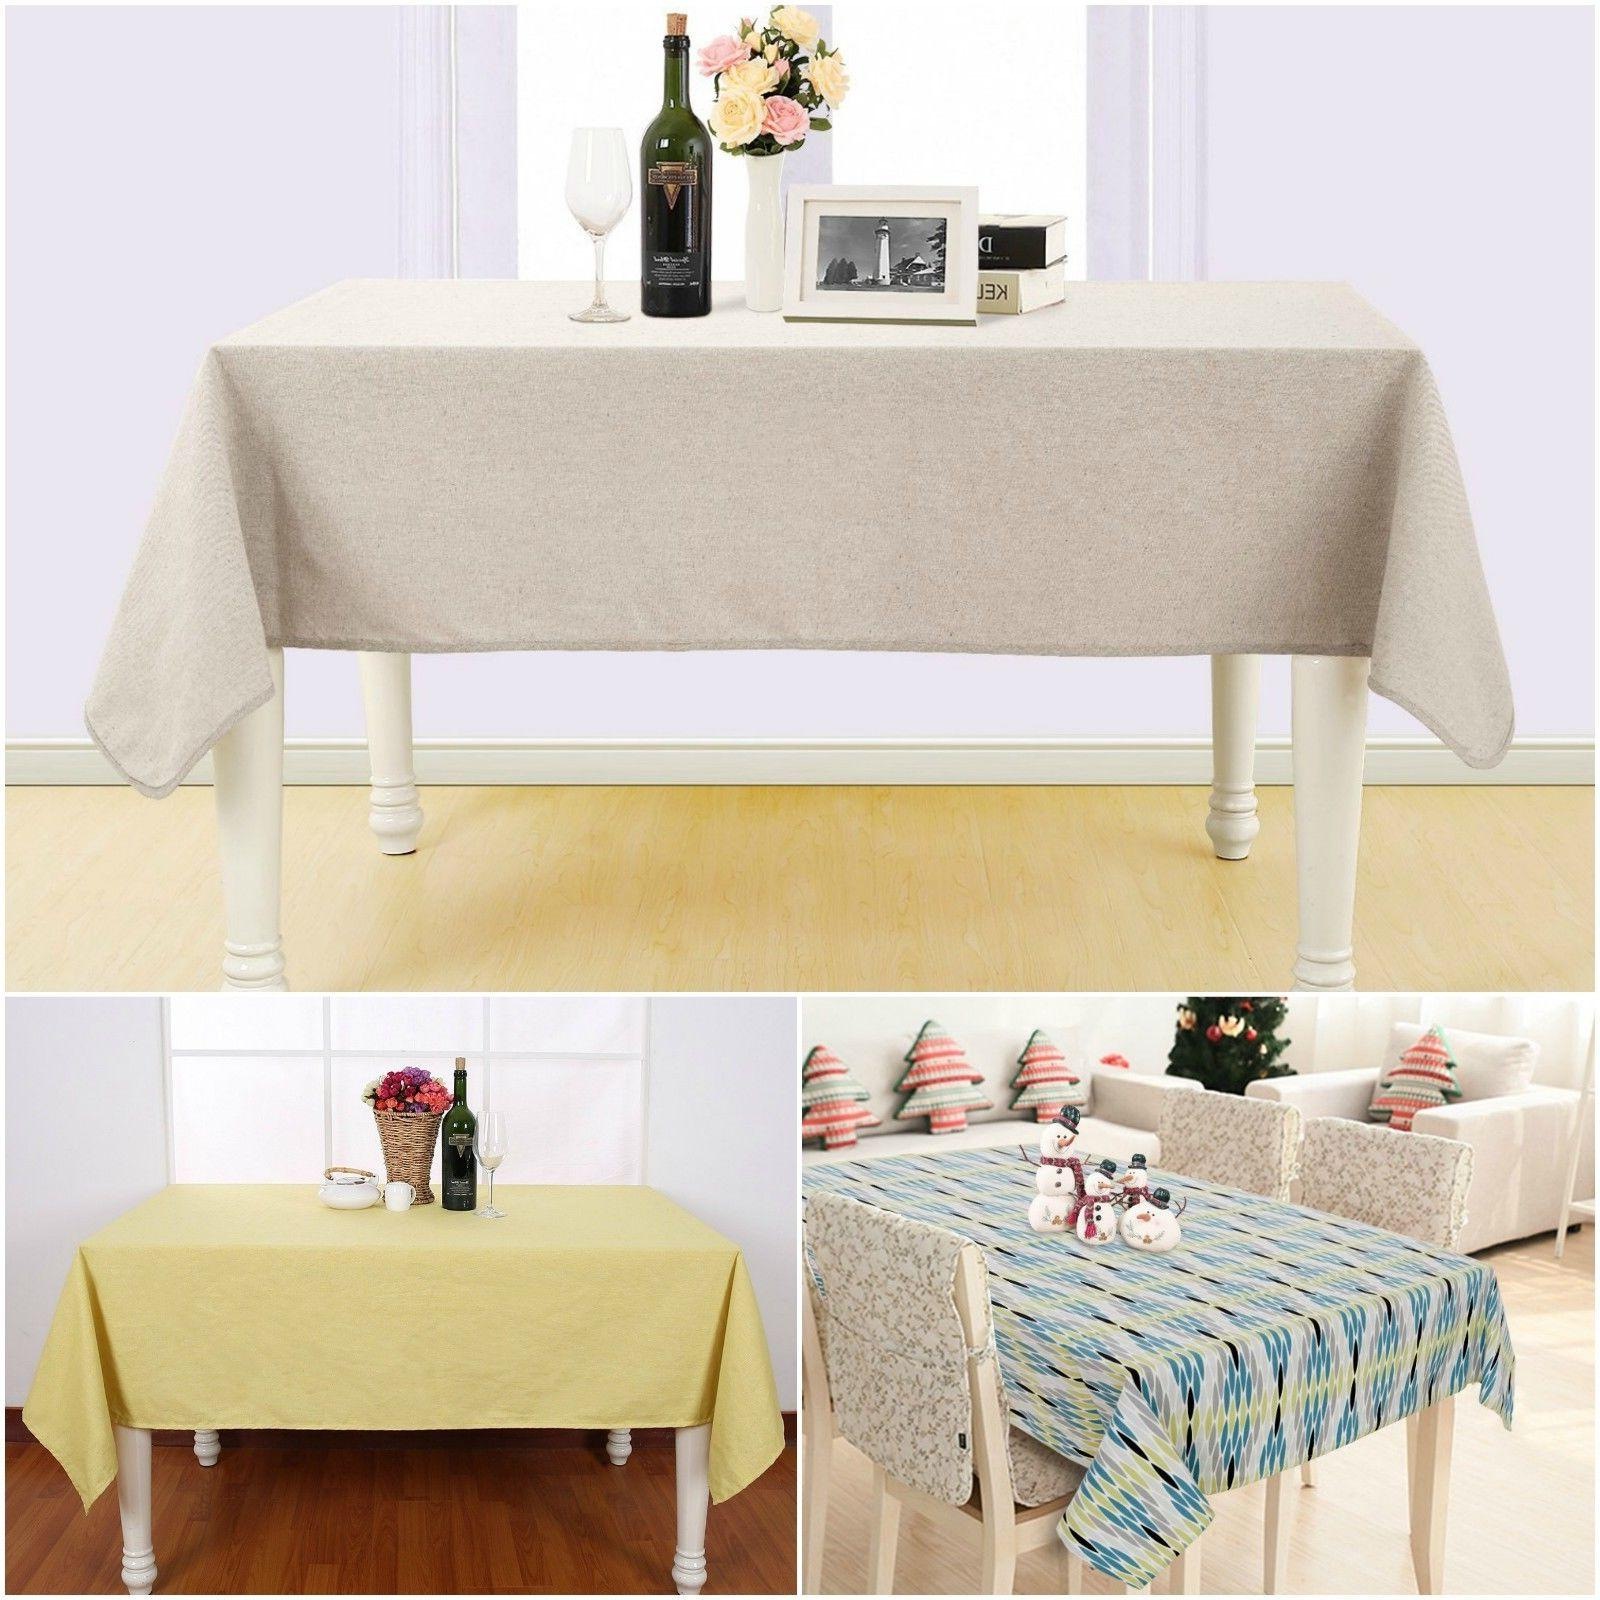 Table Cloth Cover Tablecloth Fabric Cotton Linen Soft Waterp